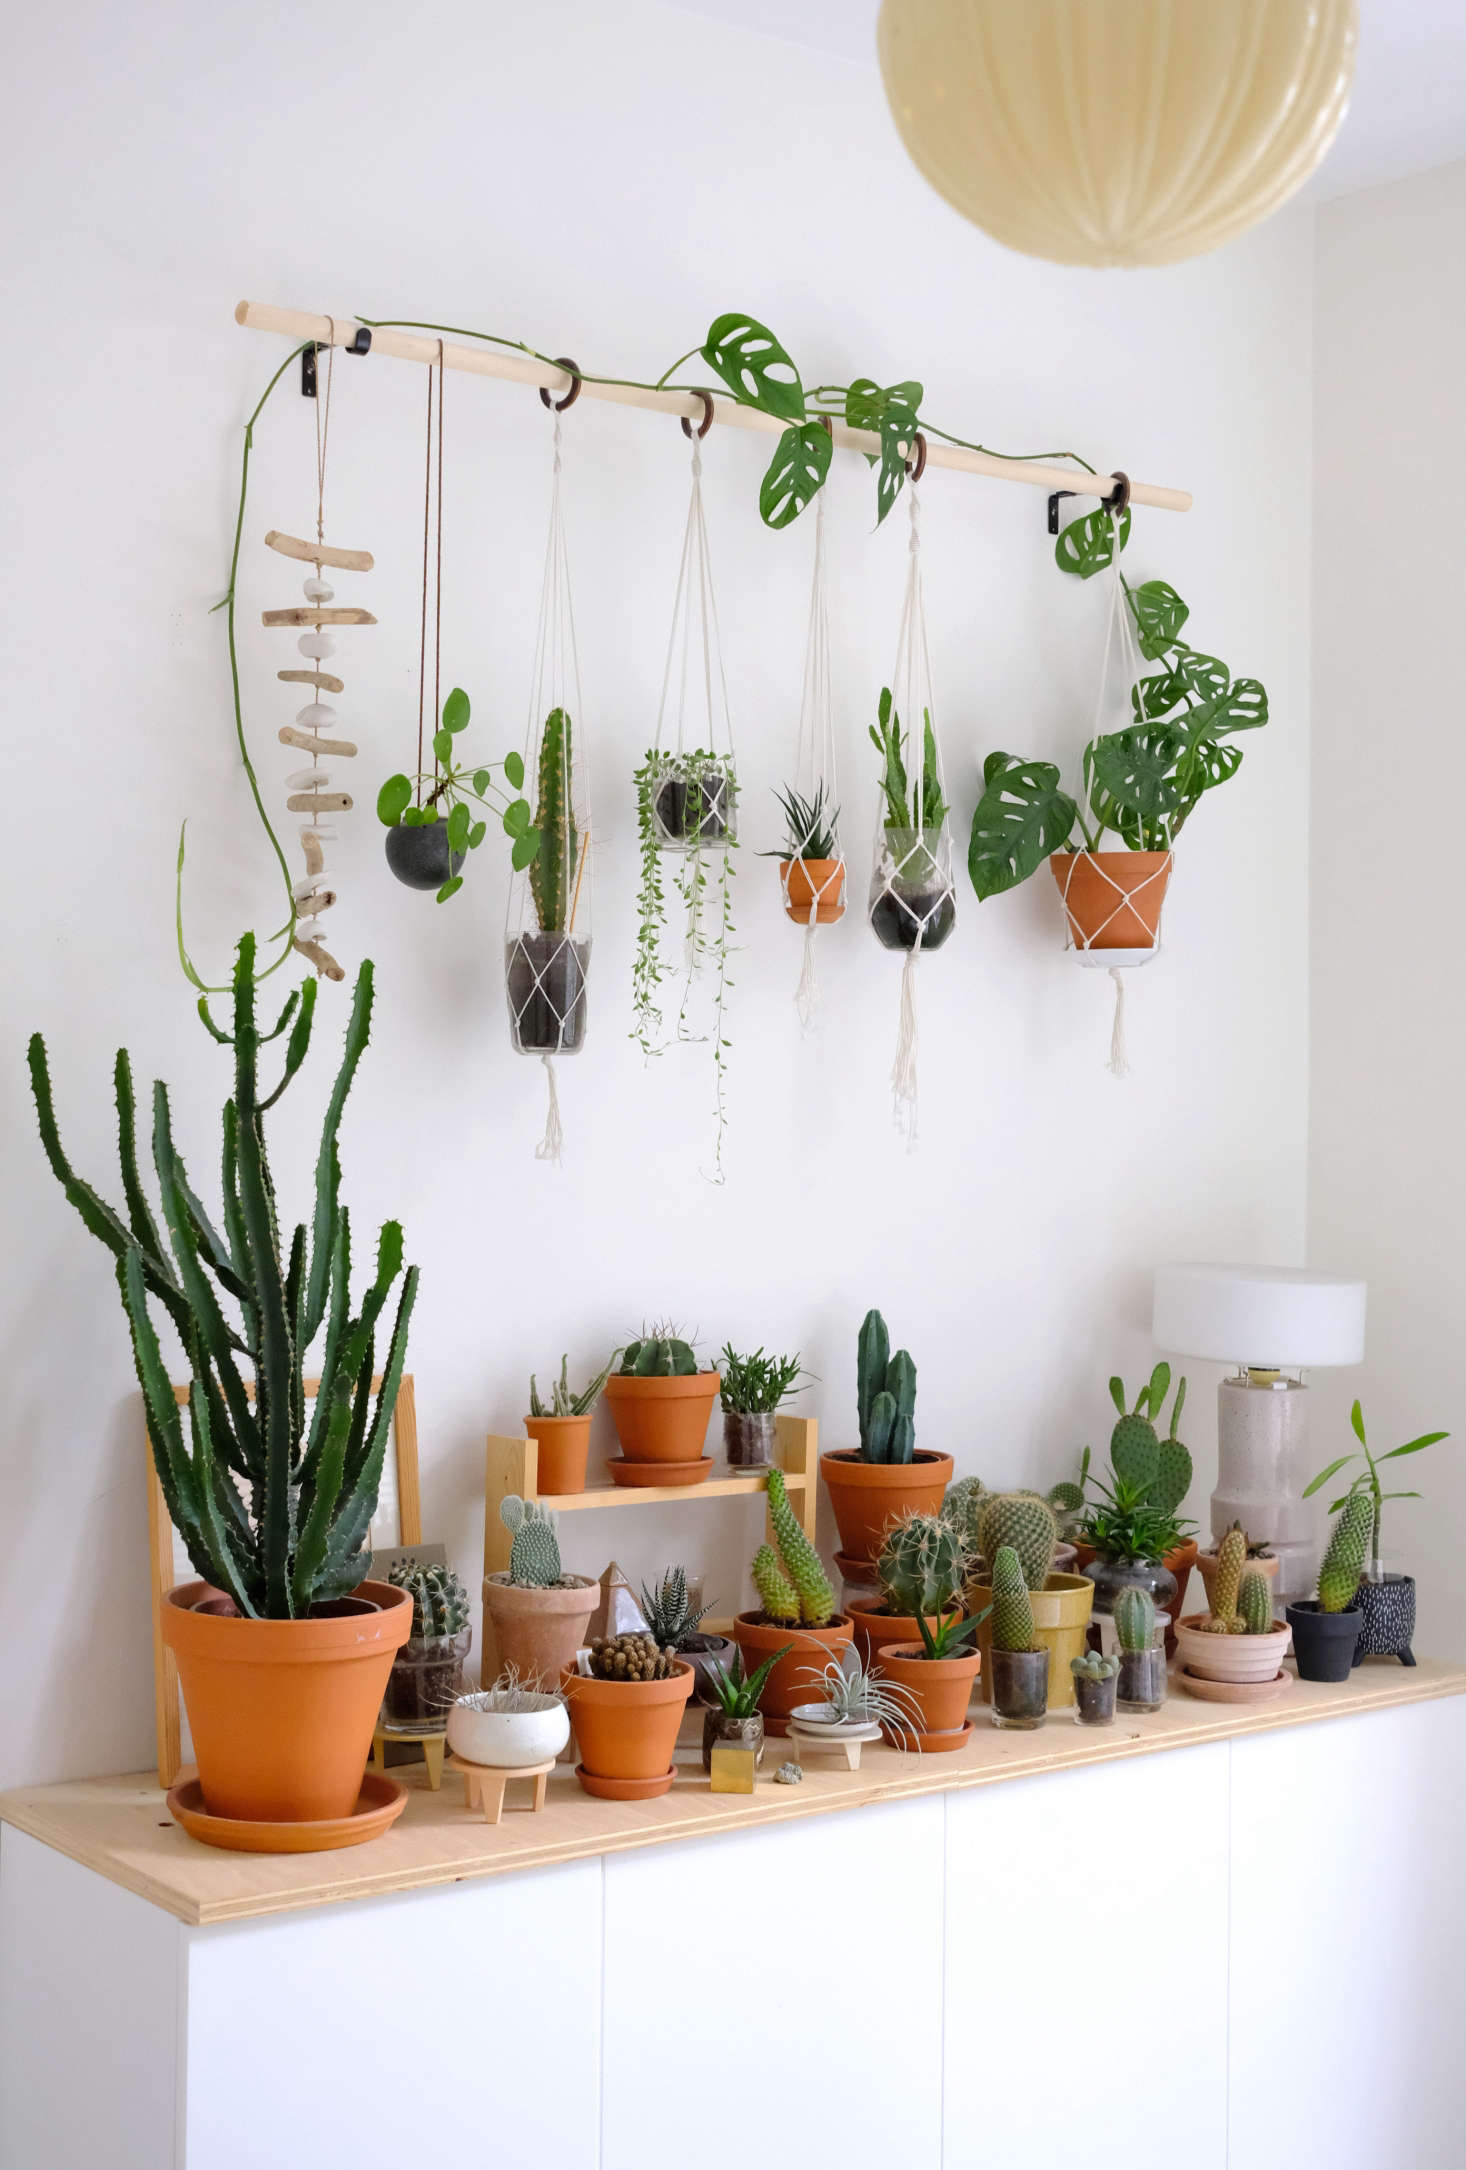 Plant Shelf Decorating Baskets